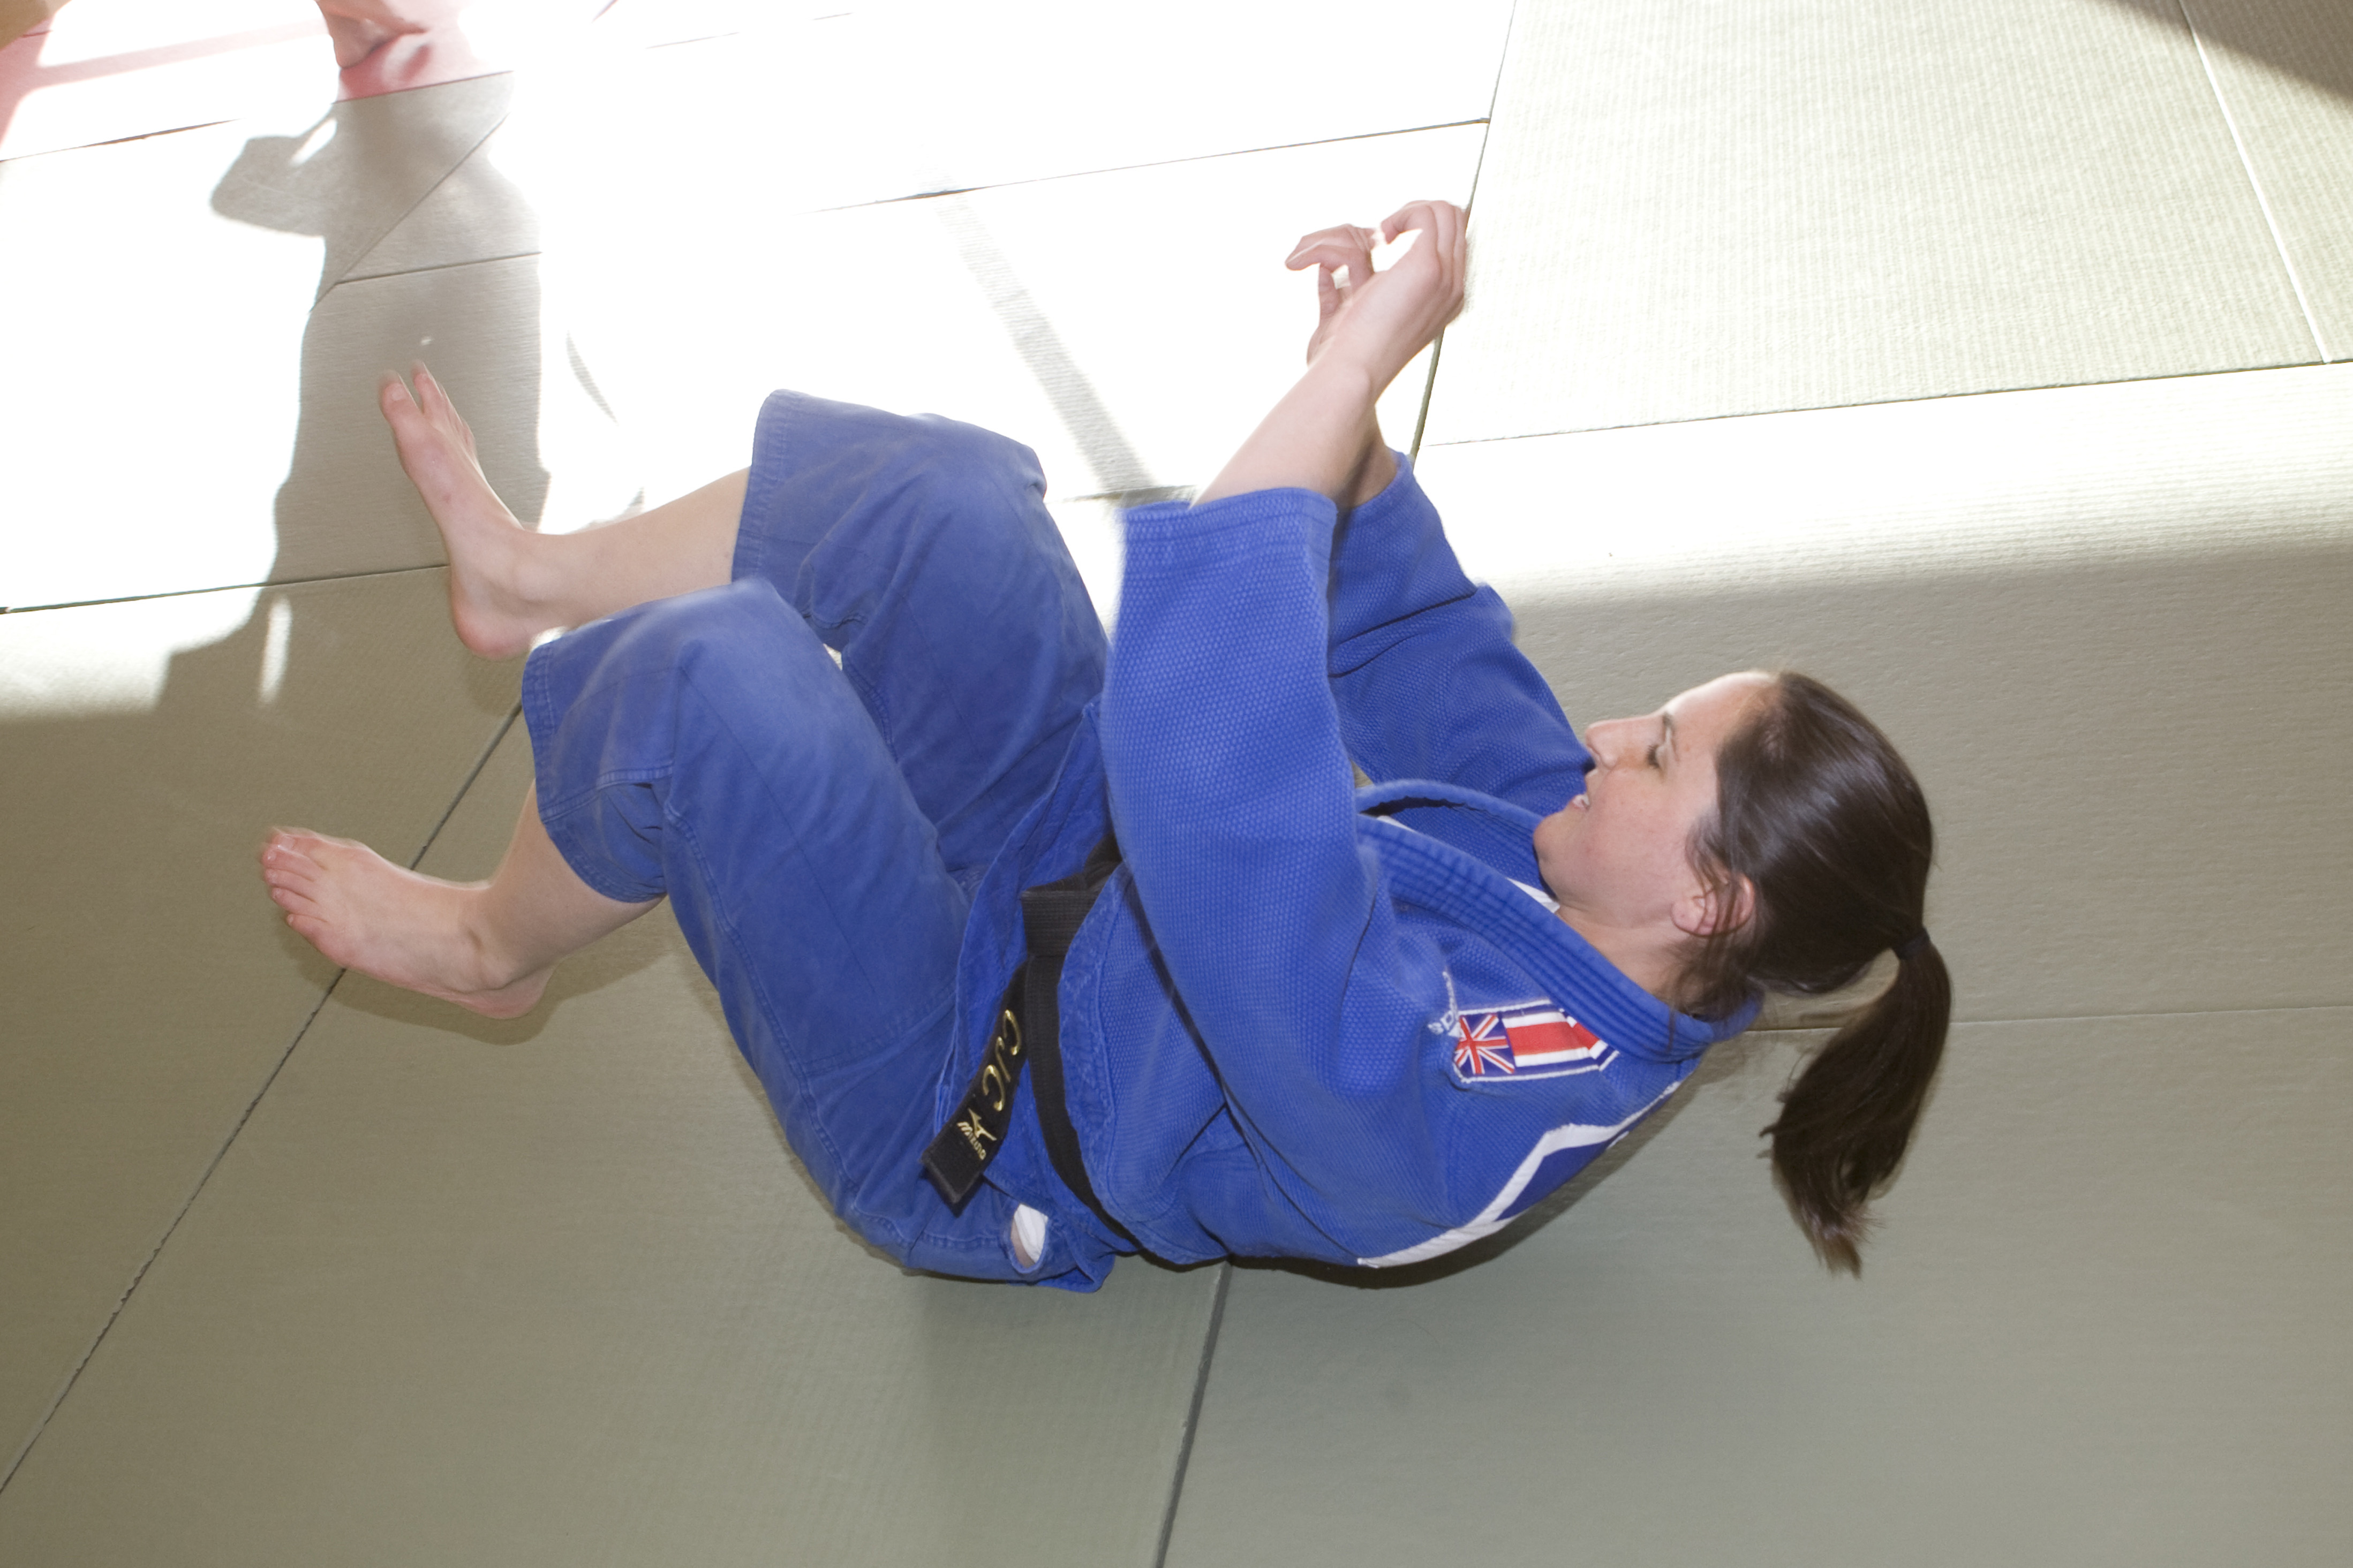 Samantha Lowe Judo Team GB  for 2012 Olympics